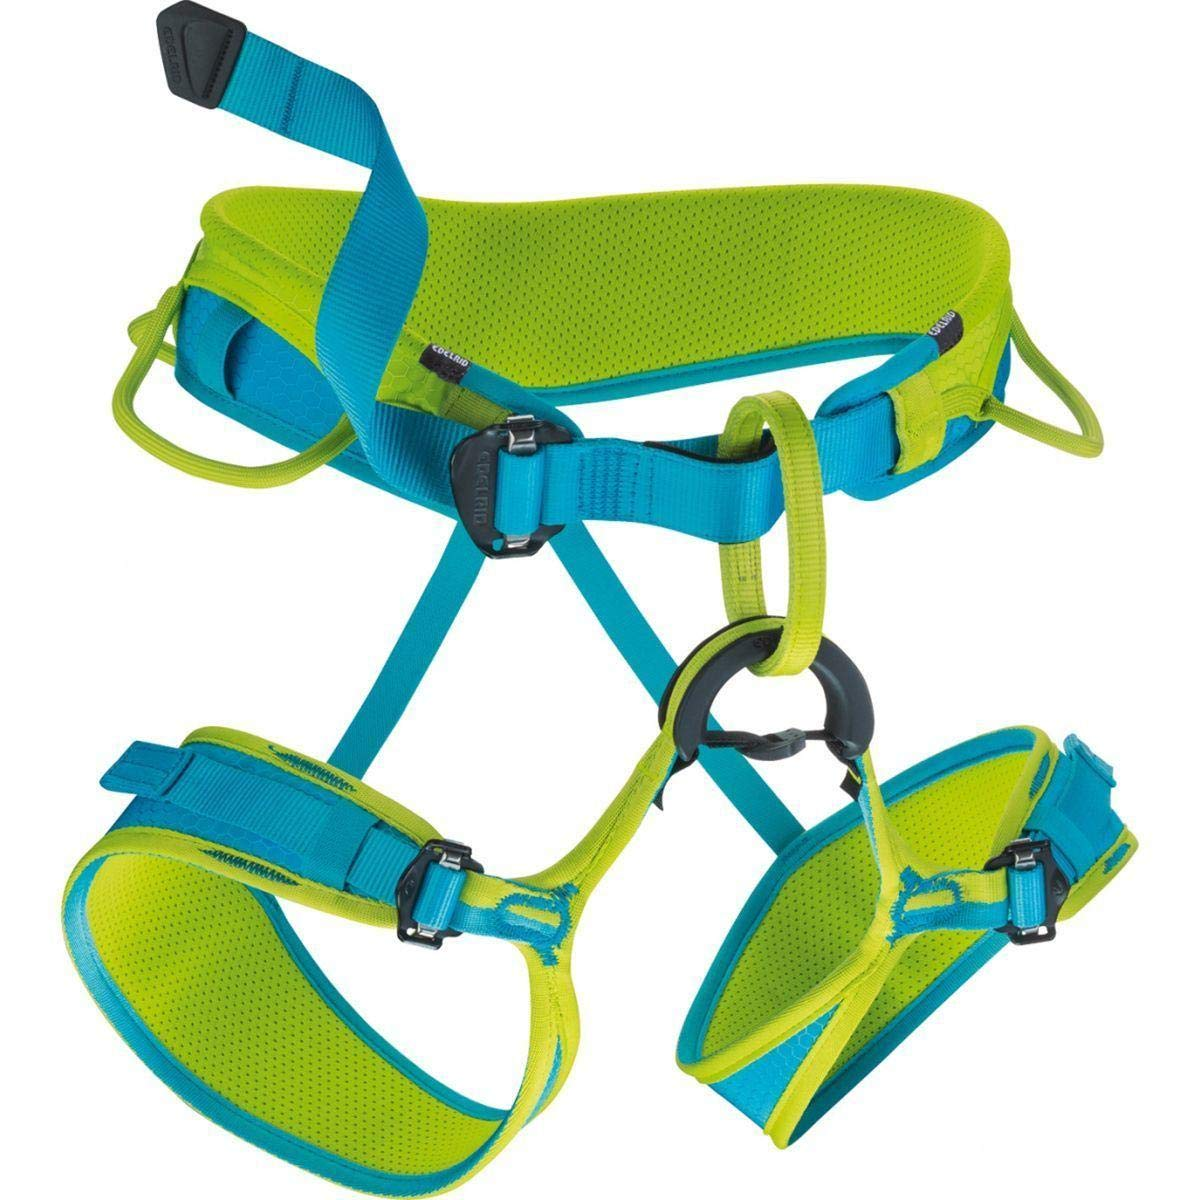 EDELRID Jayne Climbing Harness - Oasis/Icemint Small by EDELRID